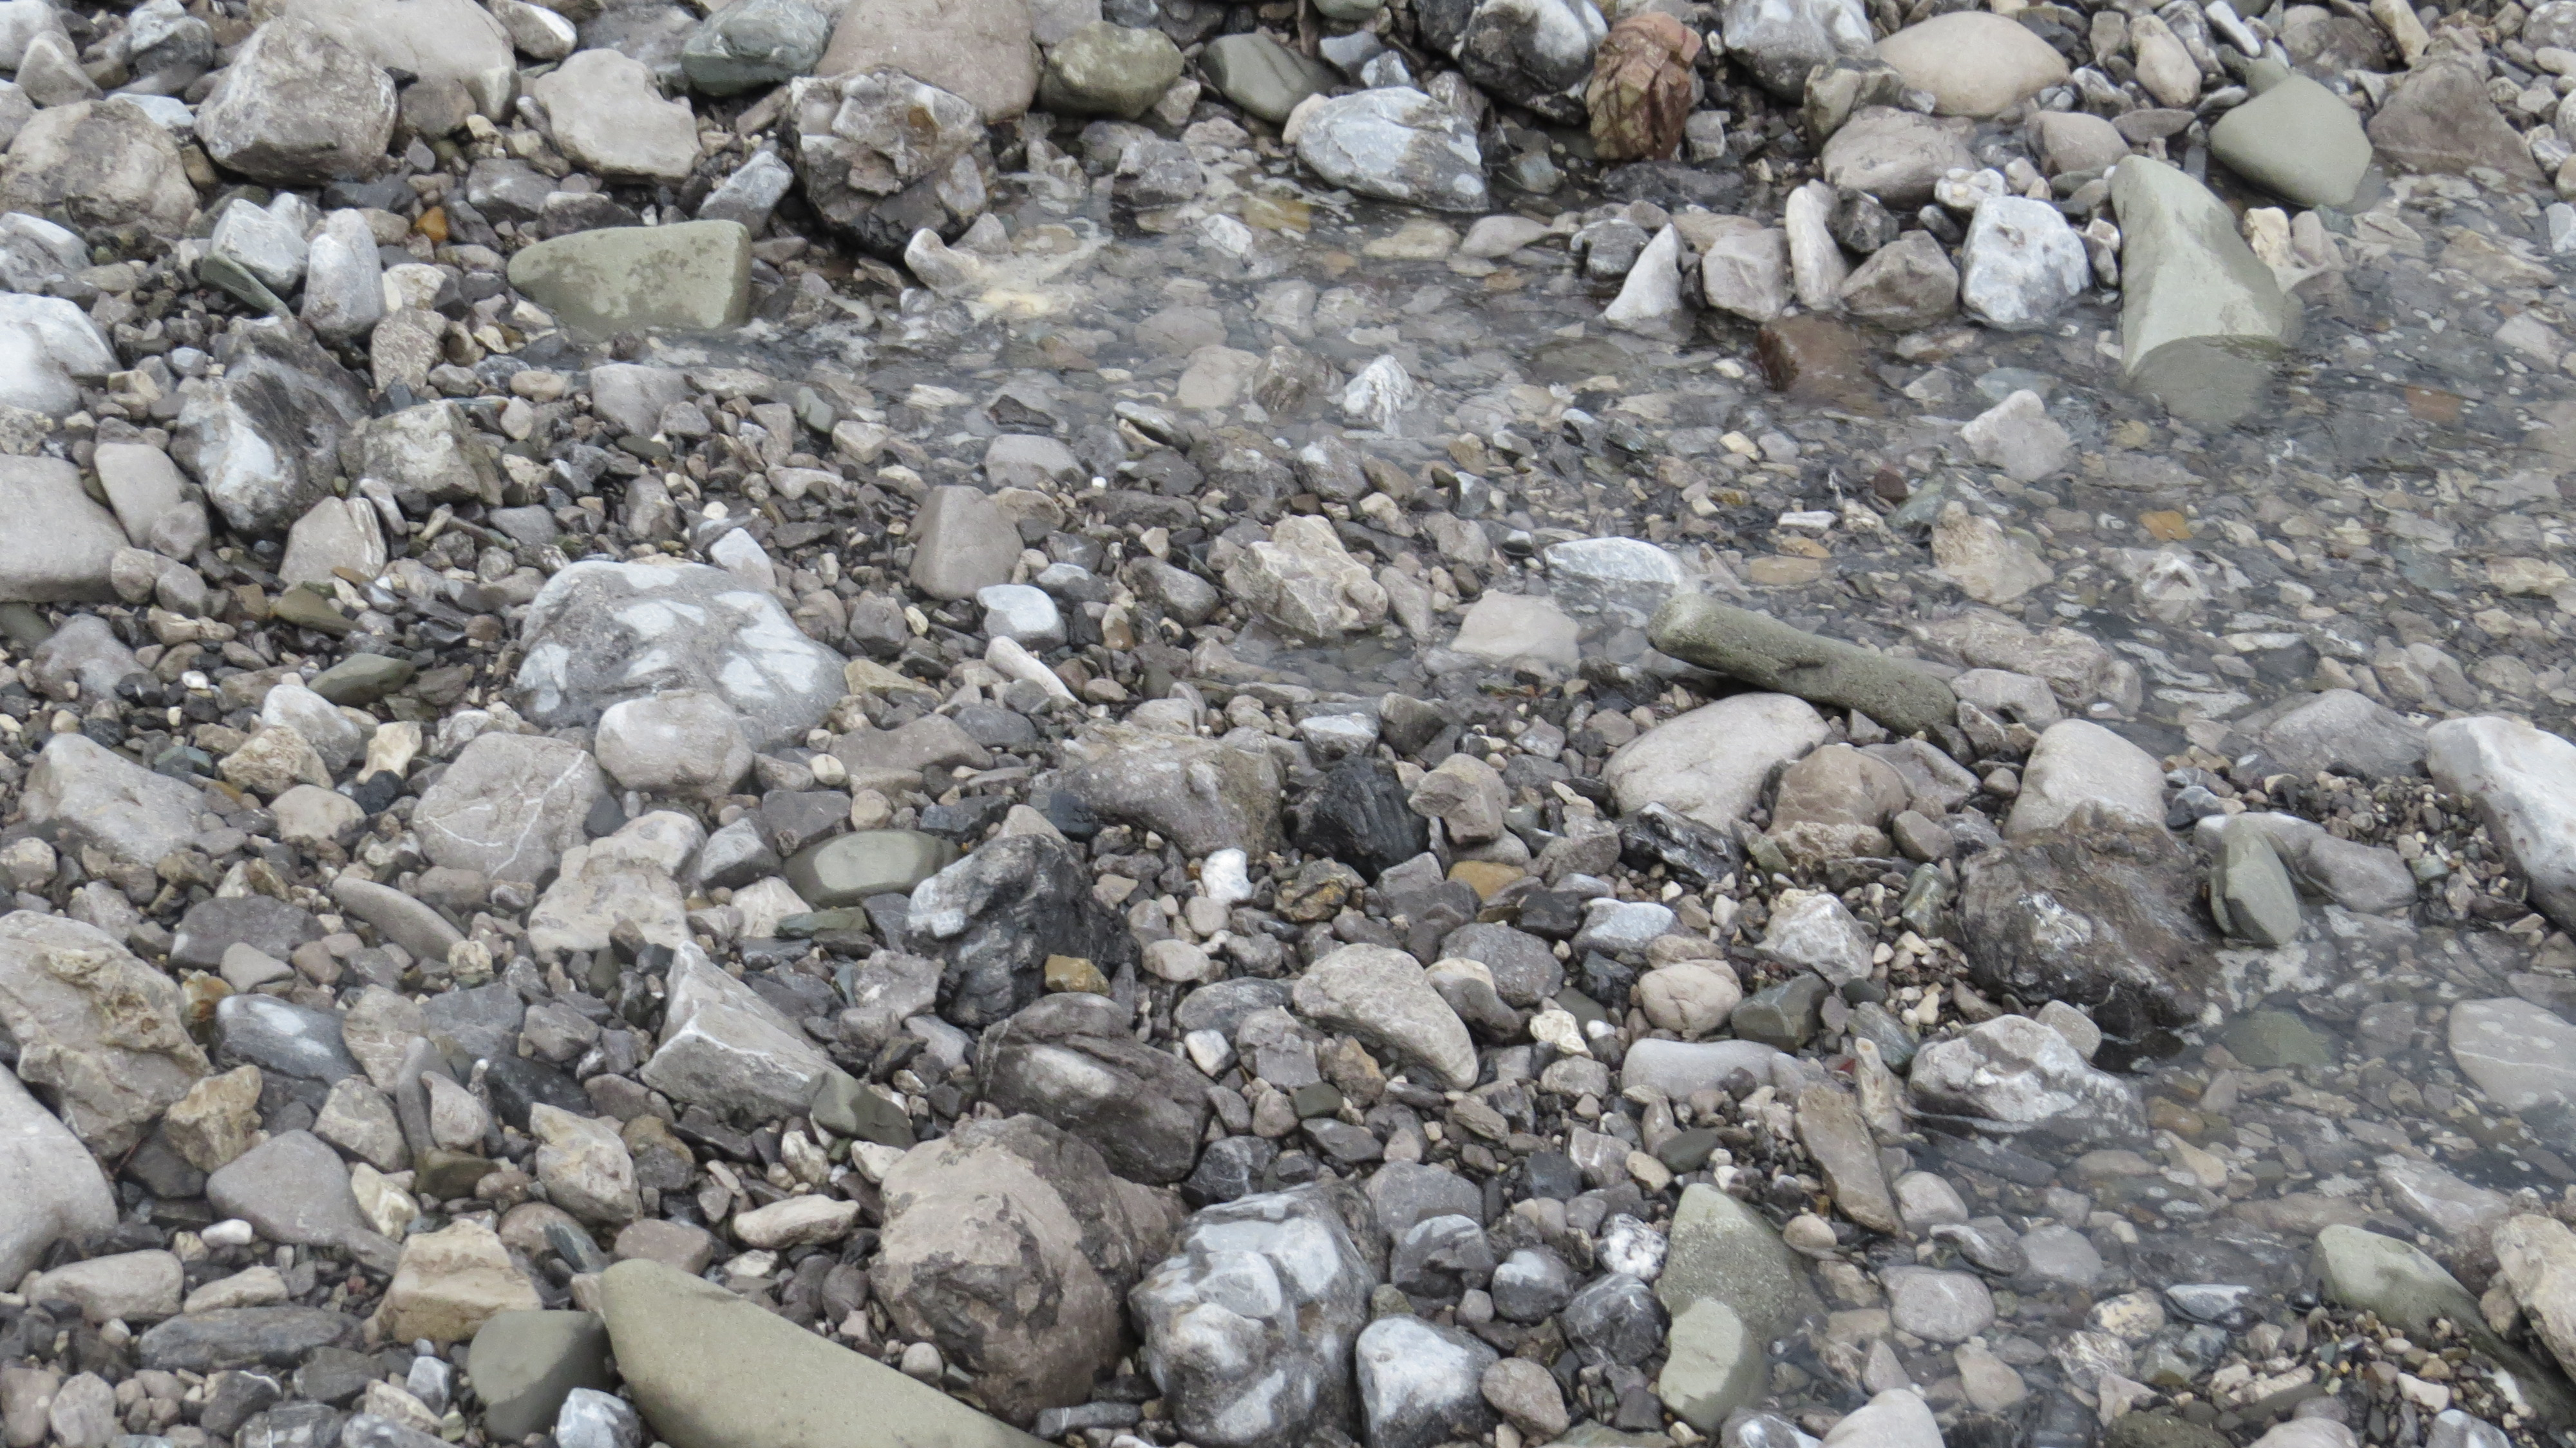 Water slowly moving down a stream bed.